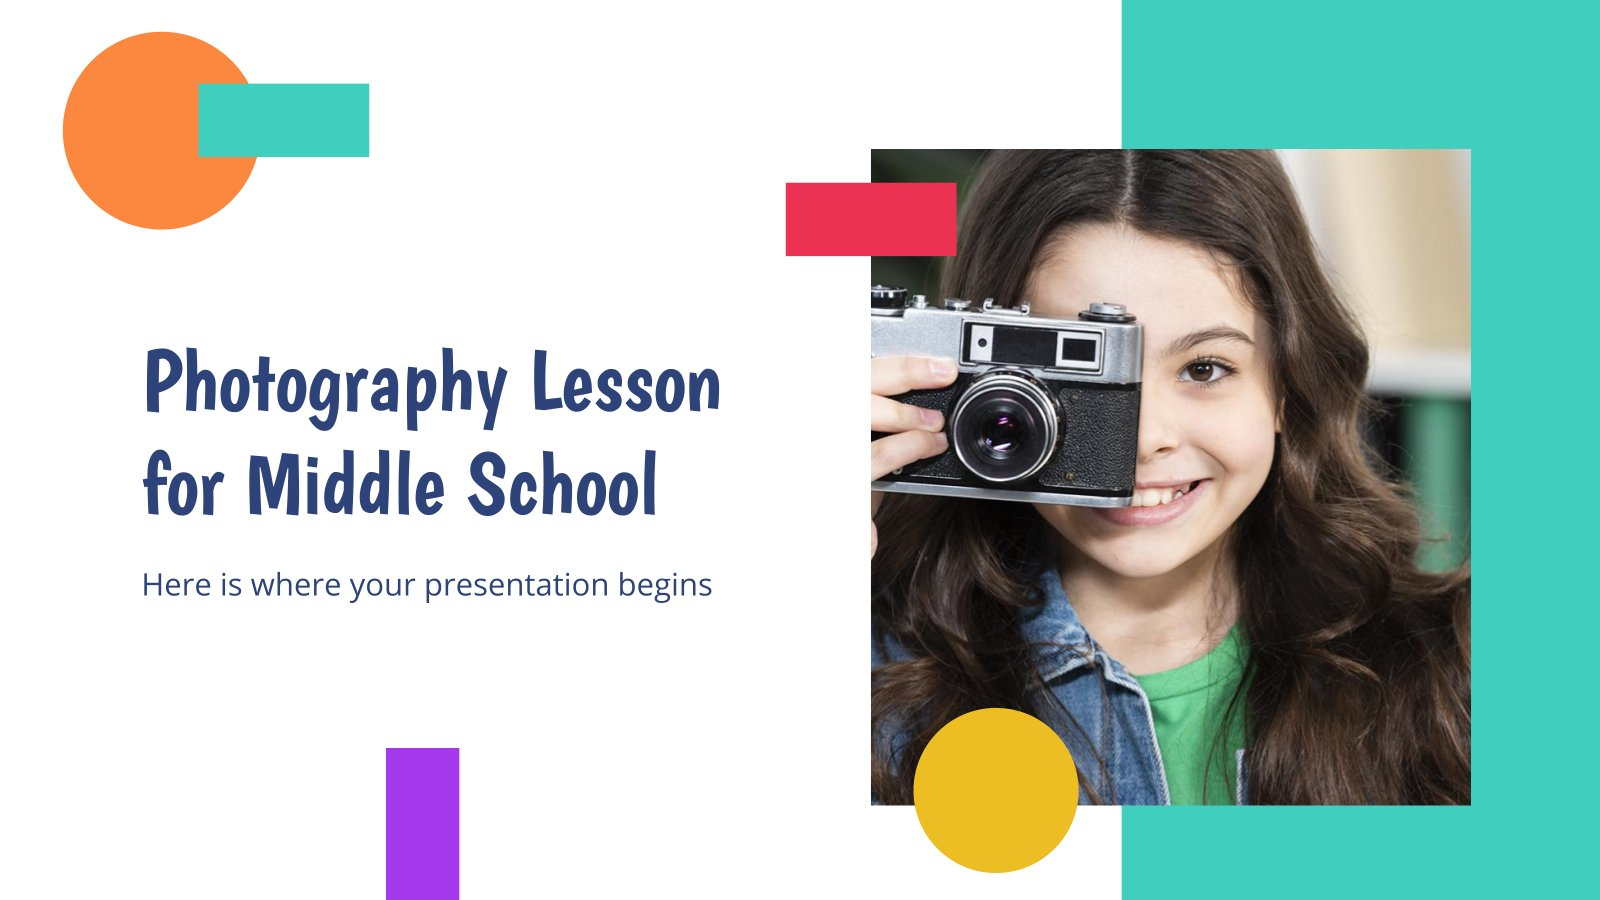 Photography Lesson for Middle School presentation template